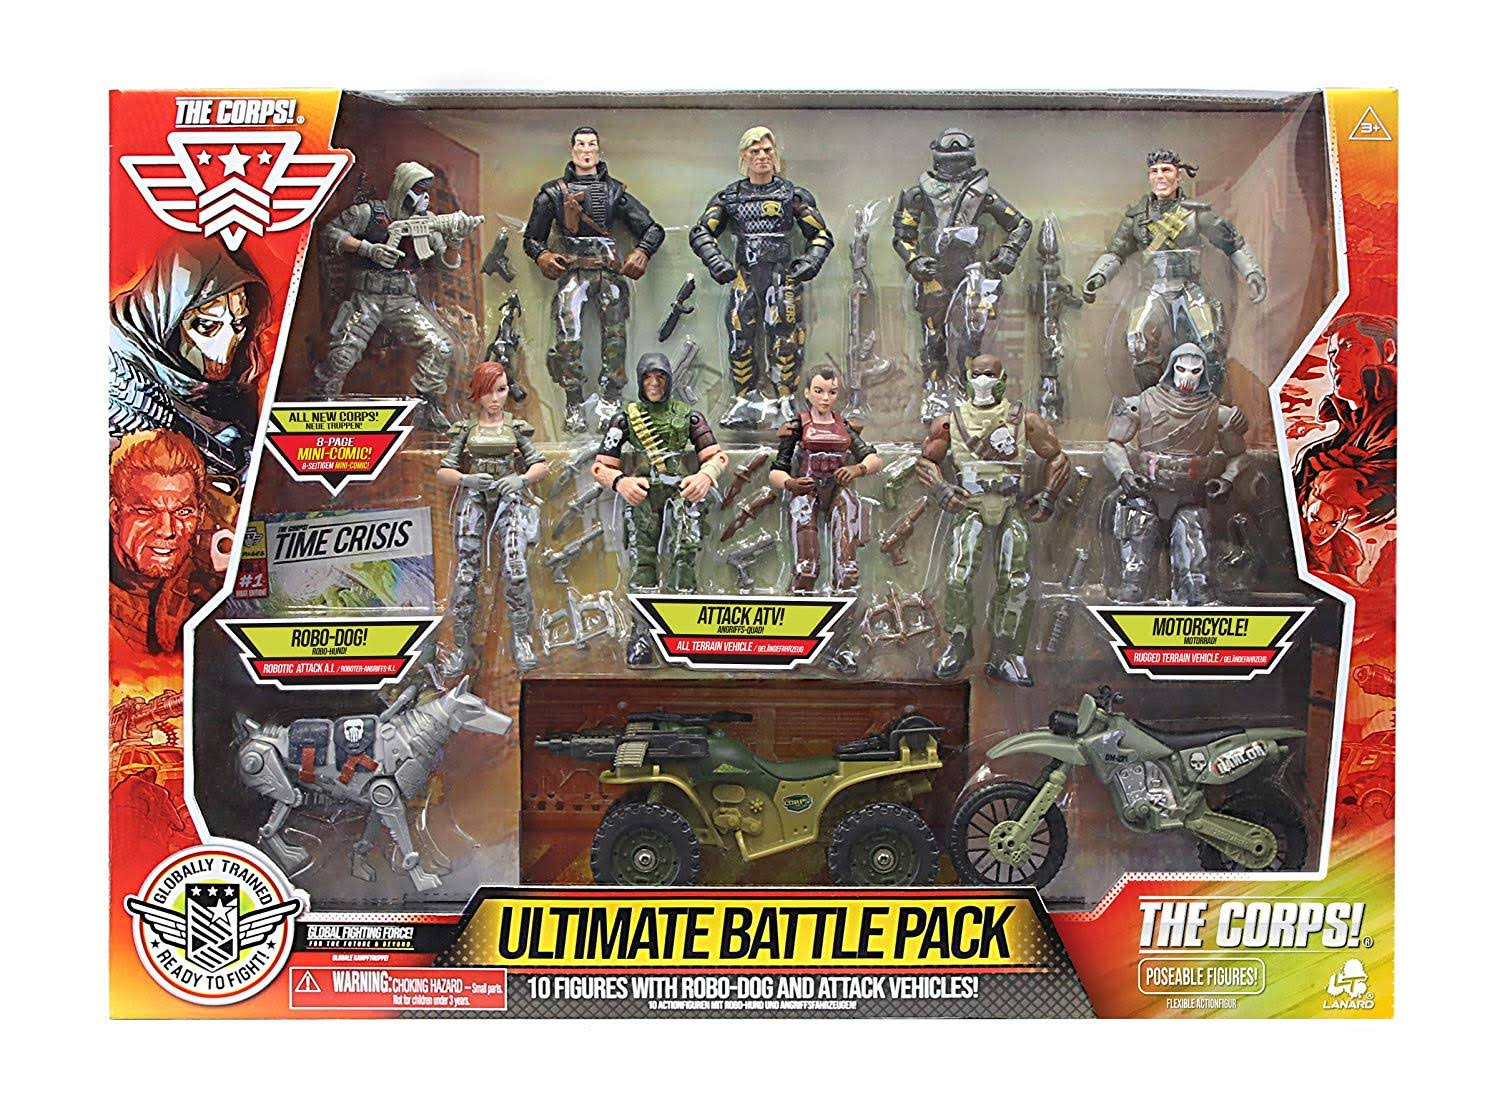 The Corps - Ultimate Battle Pack